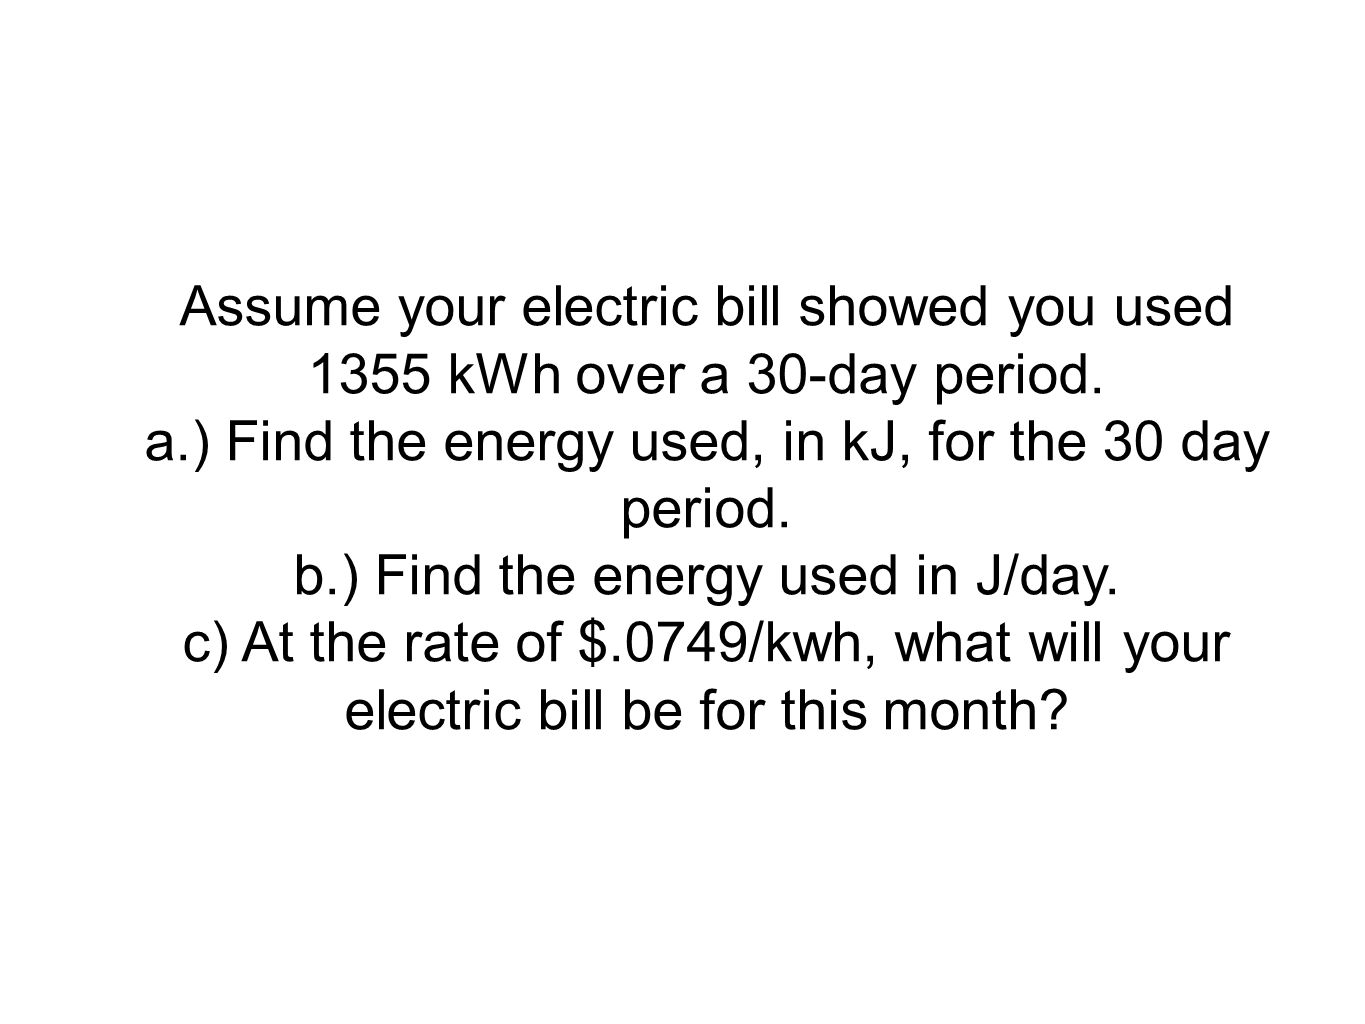 a.) Find the energy used, in kJ, for the 30 day period.